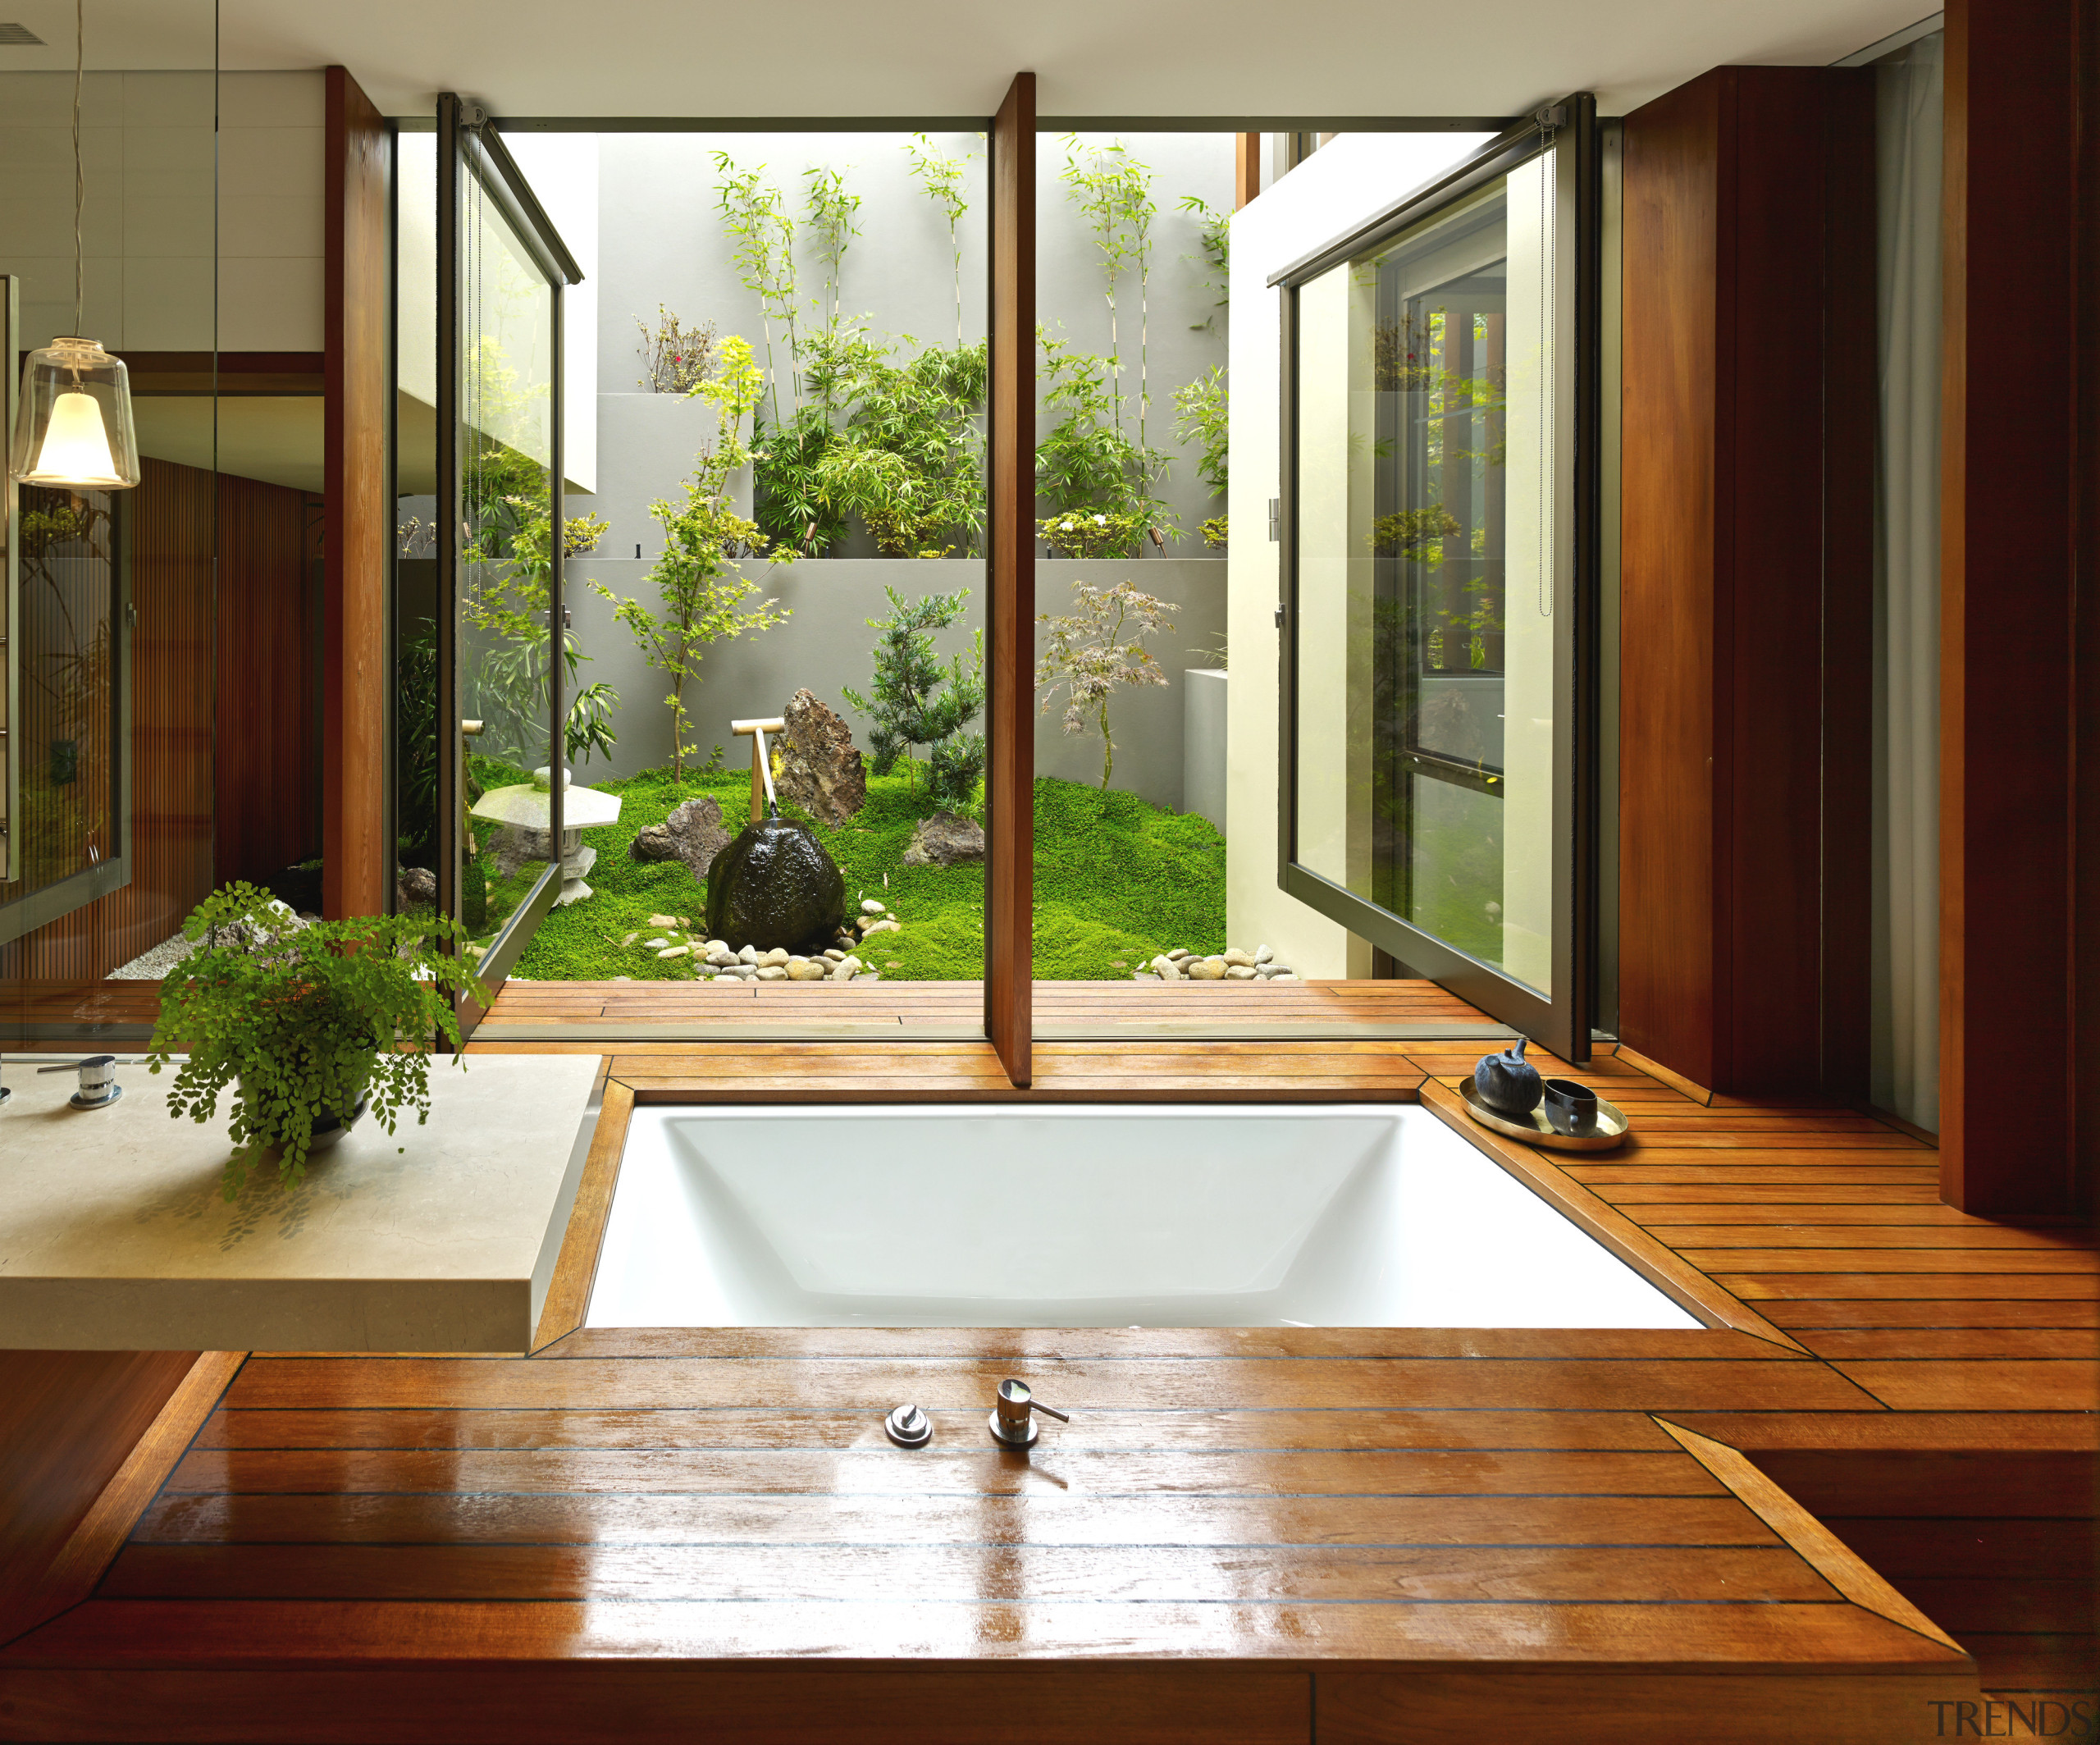 Pivoting windows over this tub open out to architecture, floor, home, house, interior design, window, wood, brown, white